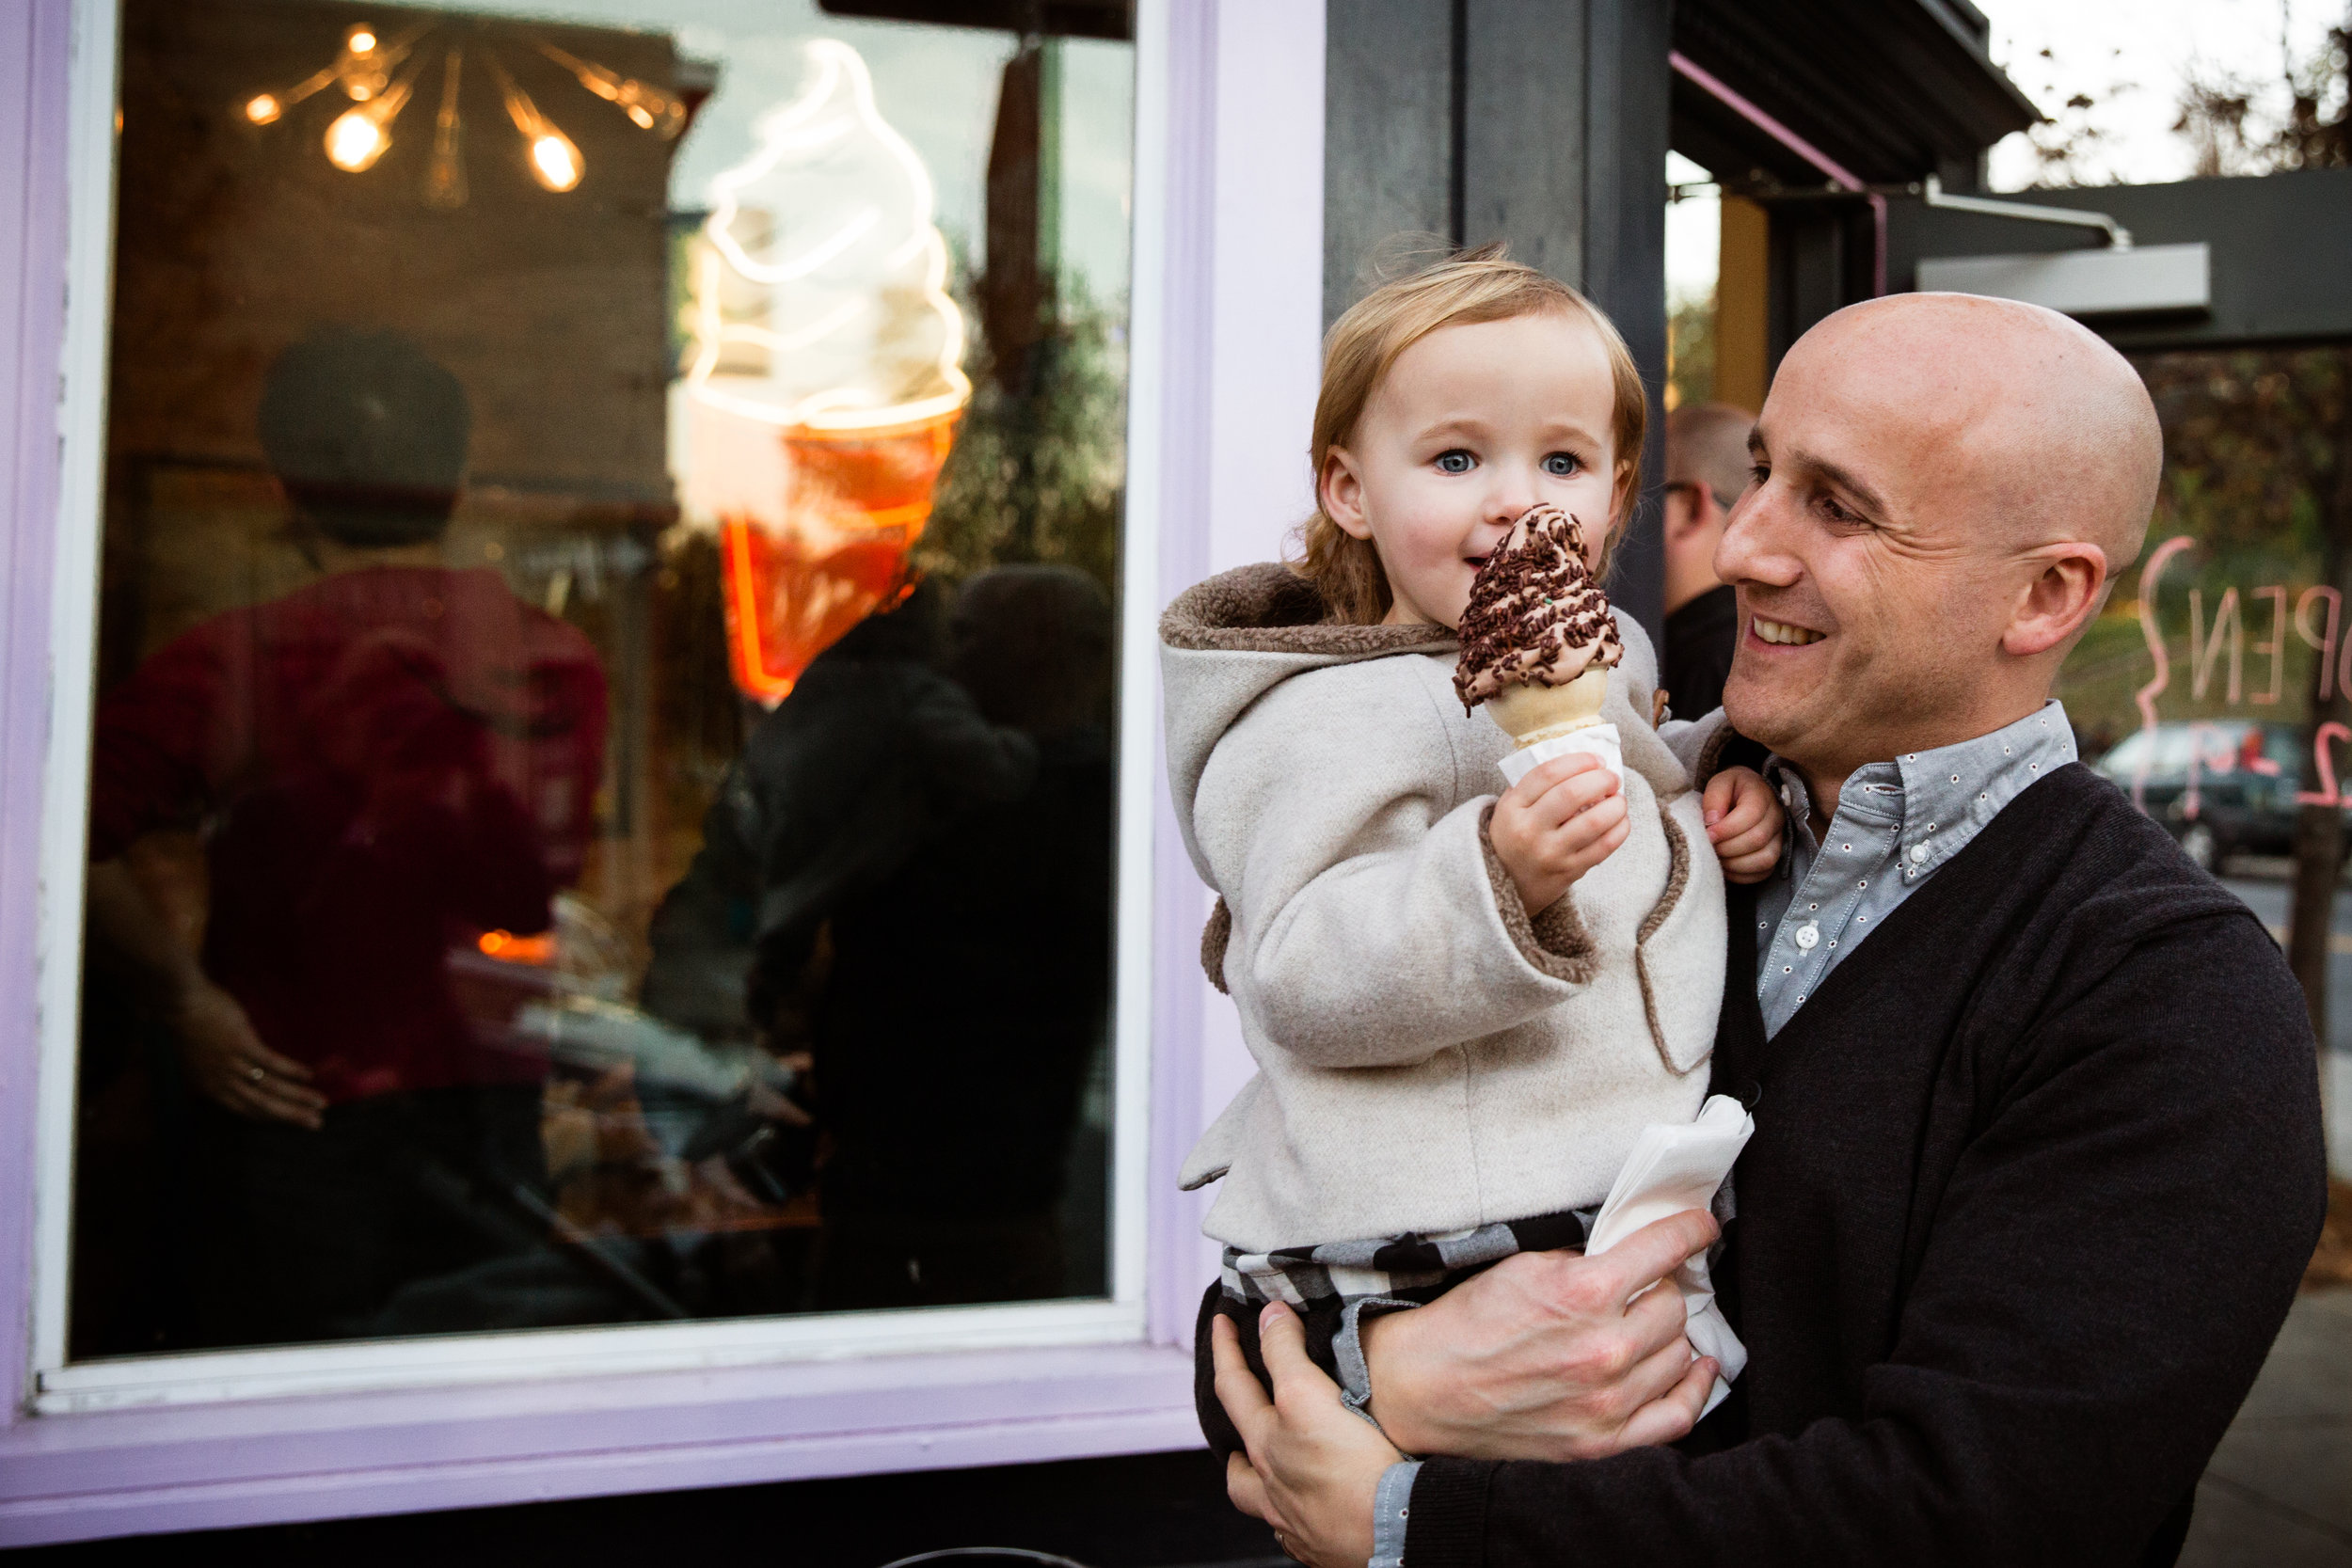 little girl in her father's arms proudly holds up ice cream cone she is eating